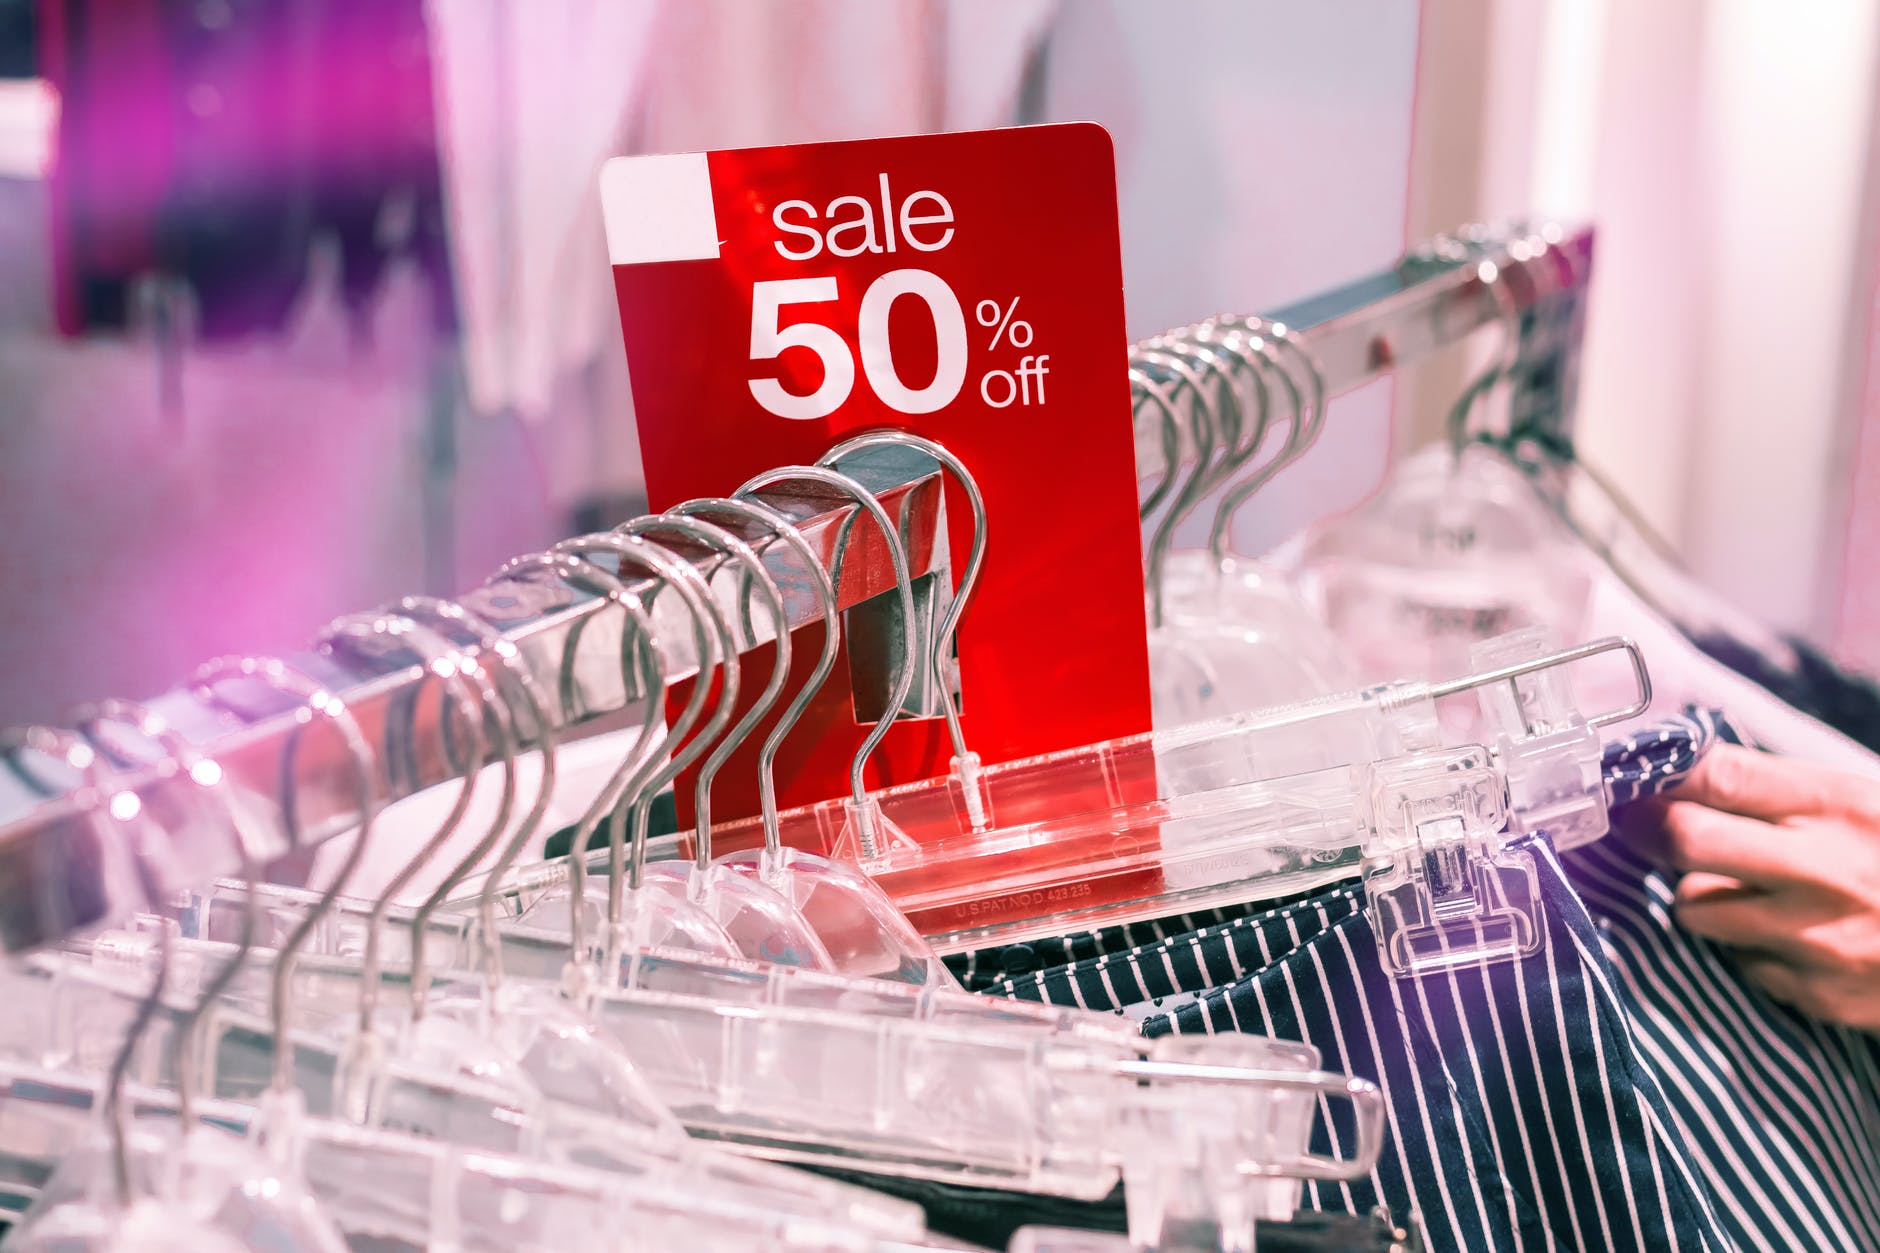 Clothes on sale in a store | Photo: Pixabay